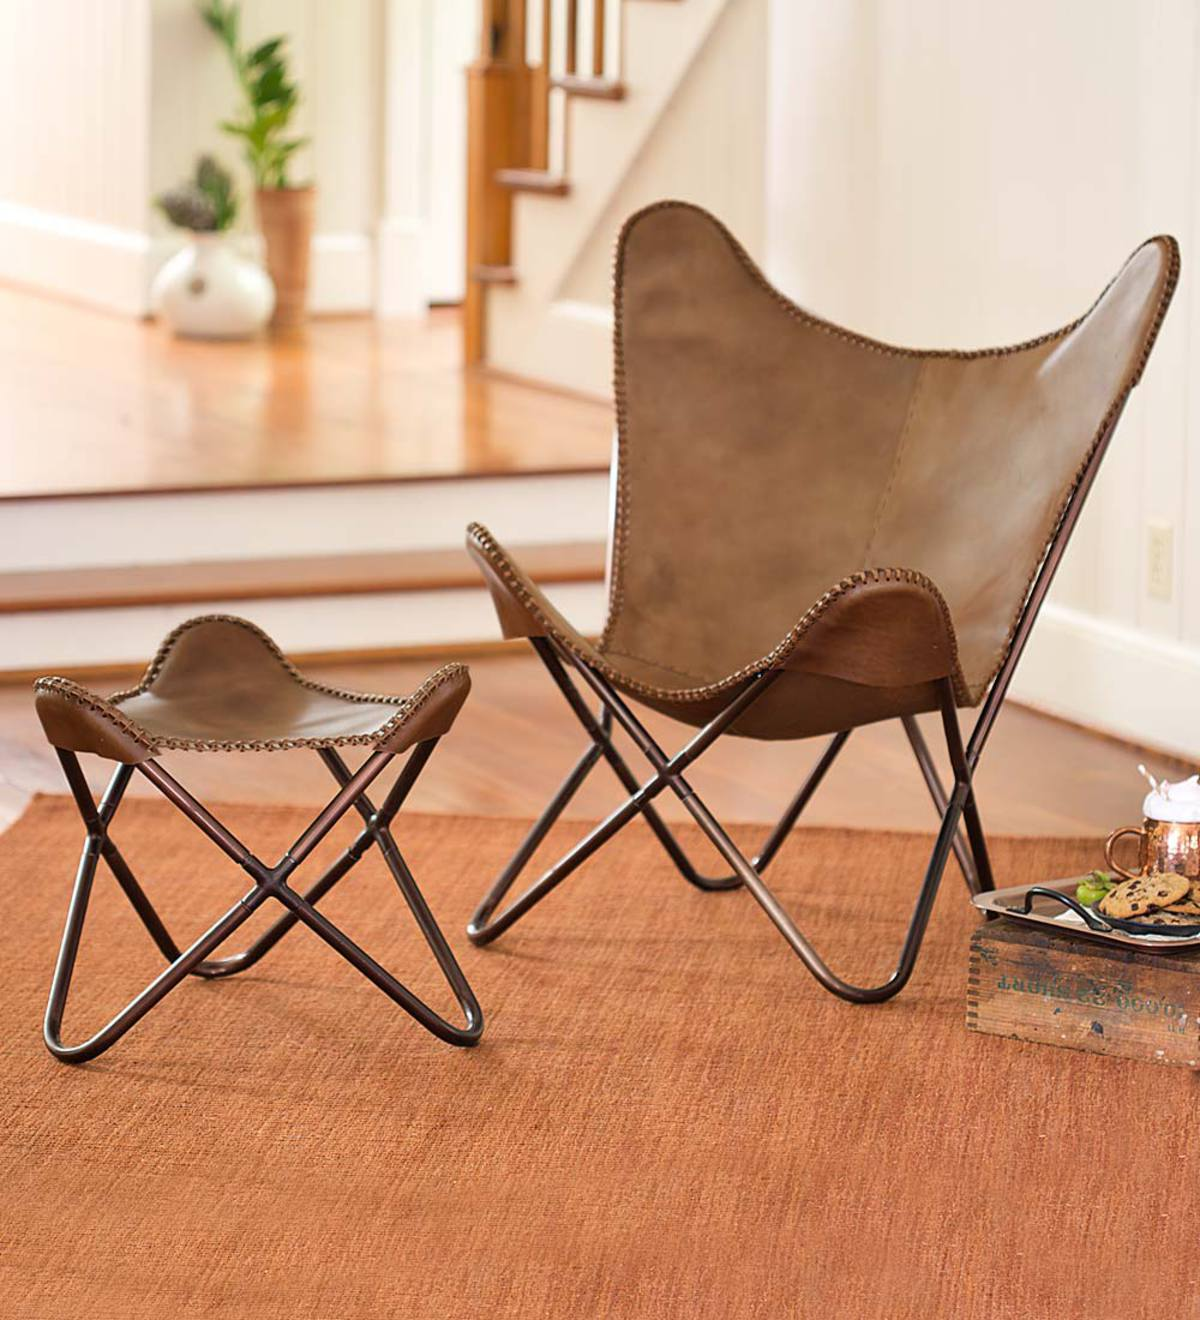 Peachy Leather Butterfly Sling Chair And Ottoman Plowhearth Short Links Chair Design For Home Short Linksinfo